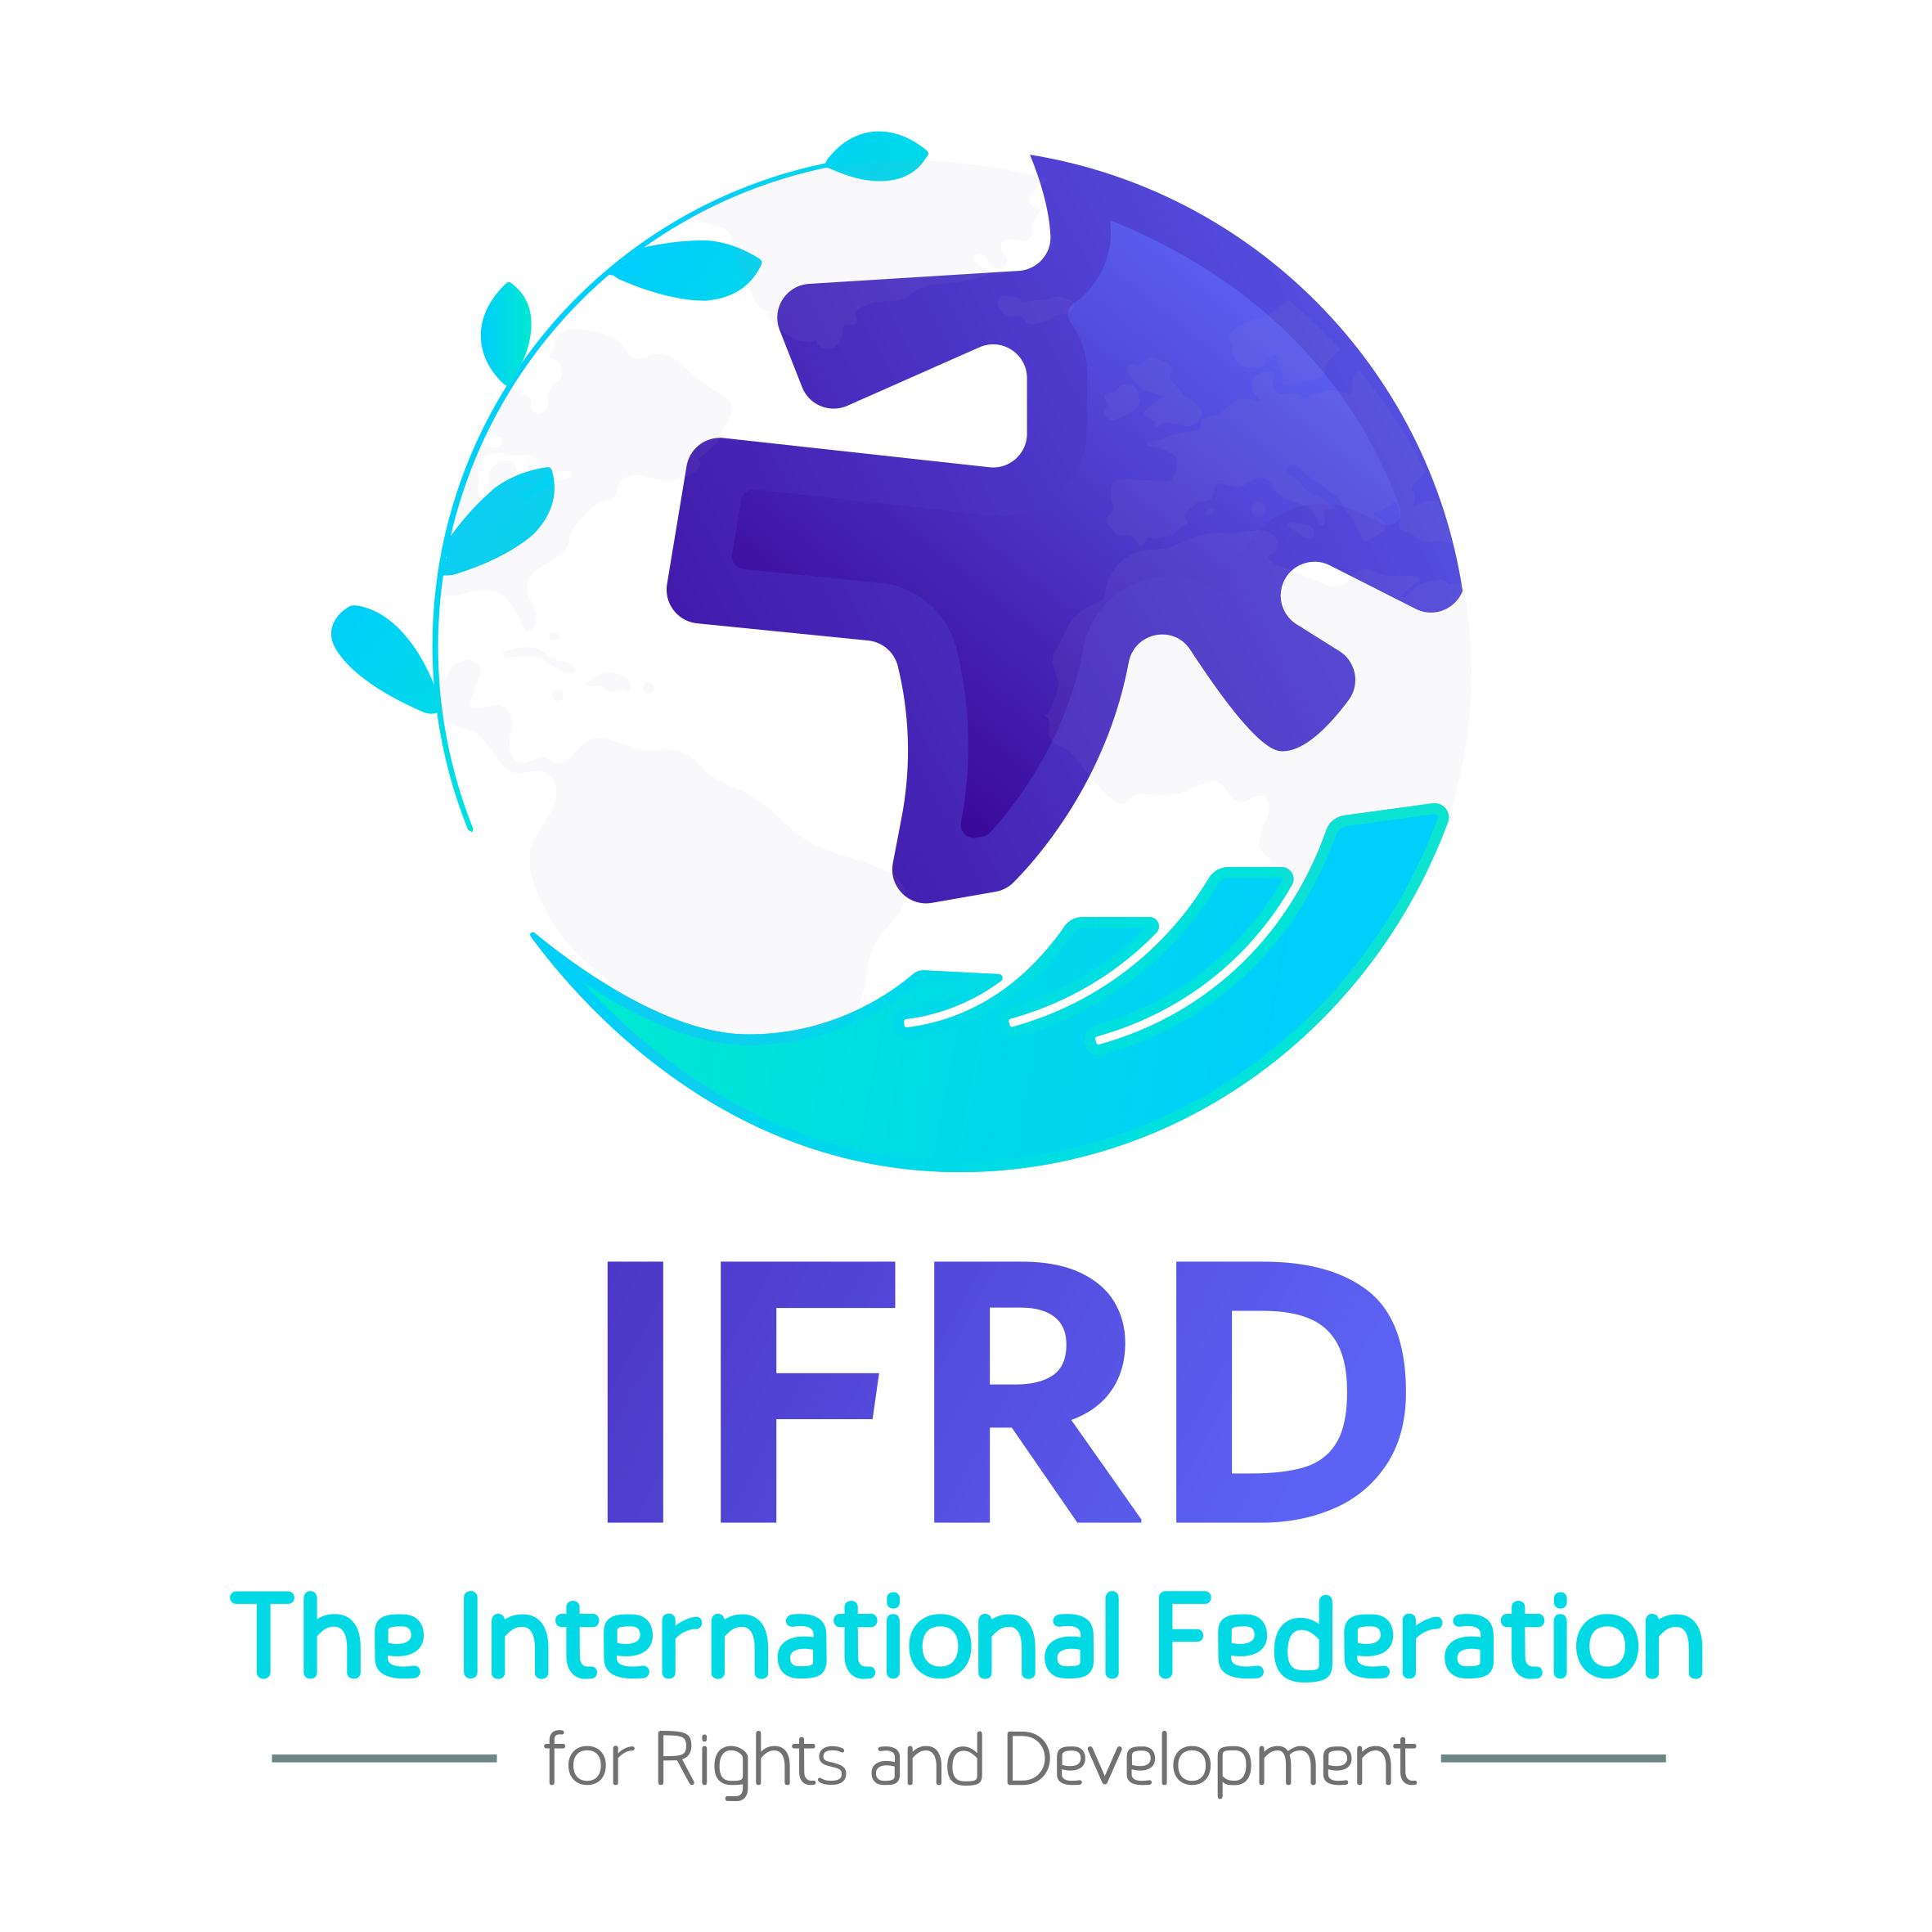 International Federation for Rights and Developments